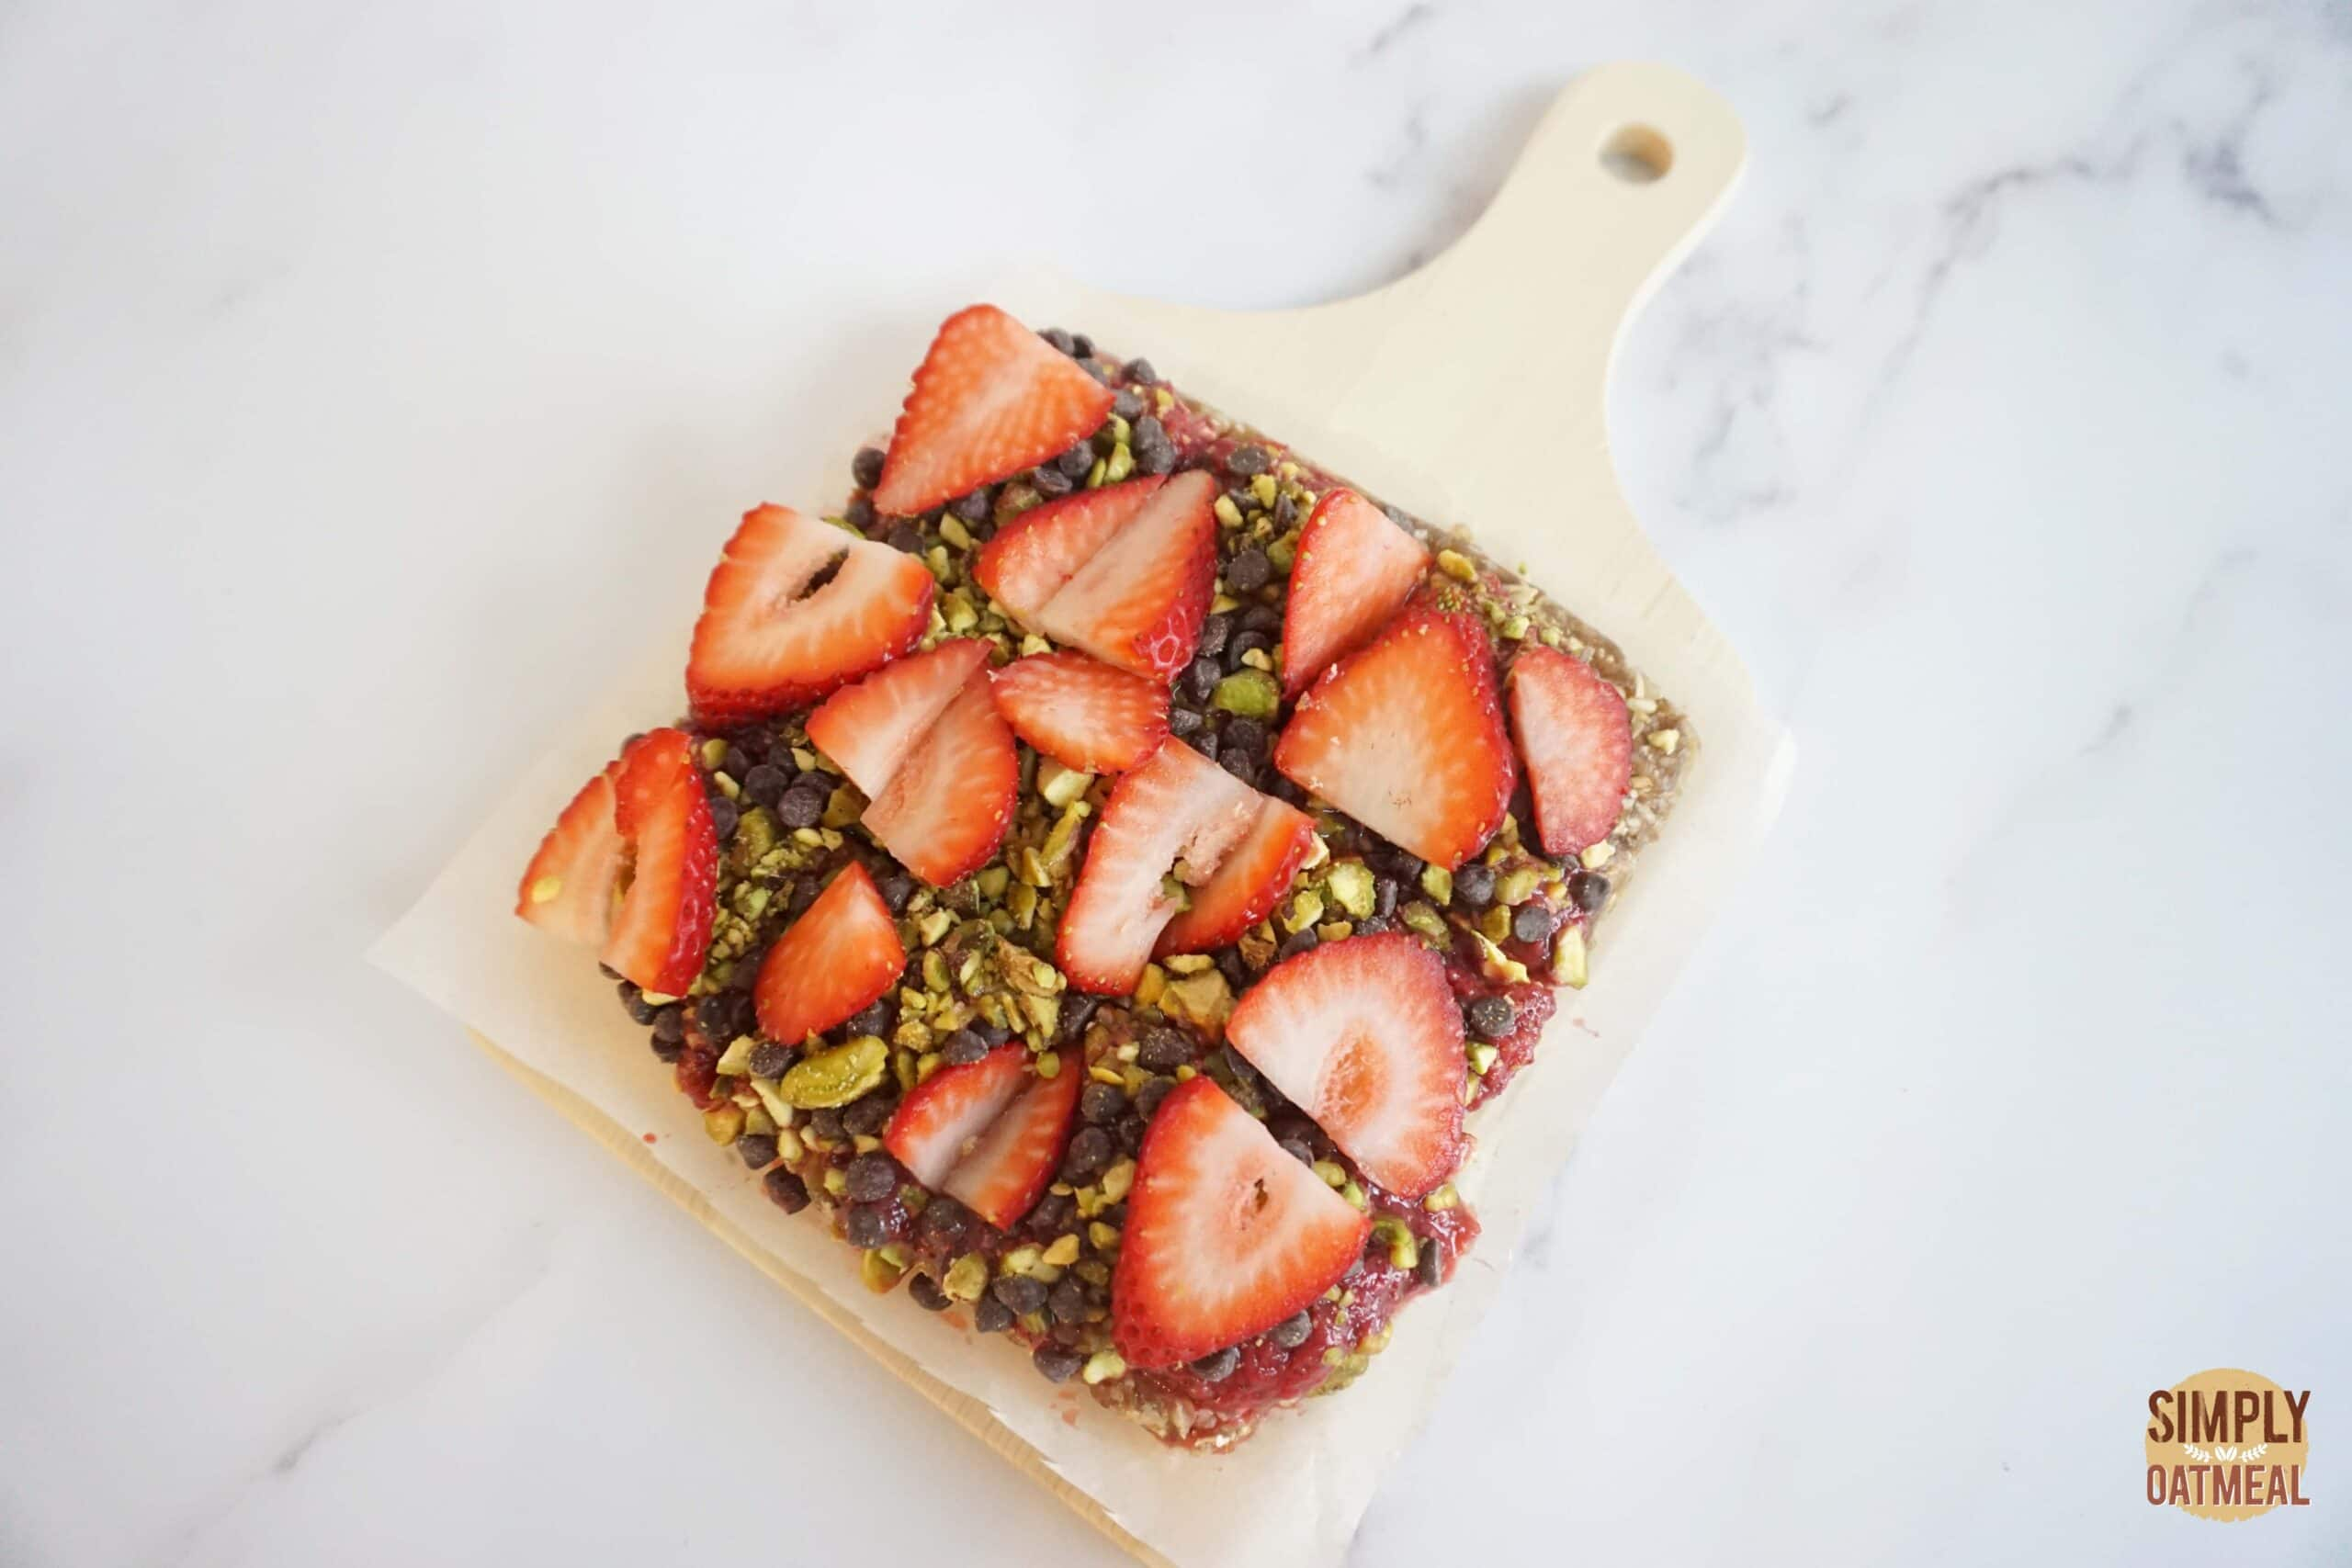 No bake strawberry oatmeal bars topped with sliced strawberries, pistachios and mini chocolate chips